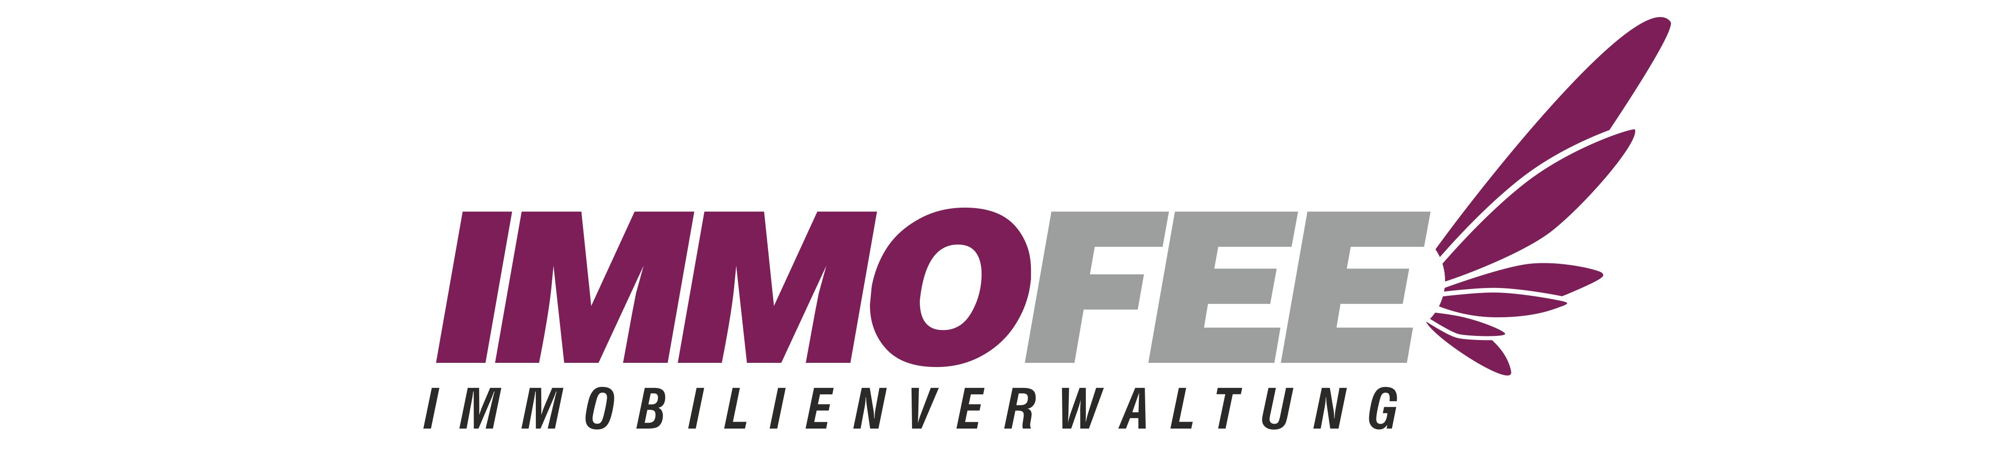 Immobilienverwaltung Wuppertal ImmoFee